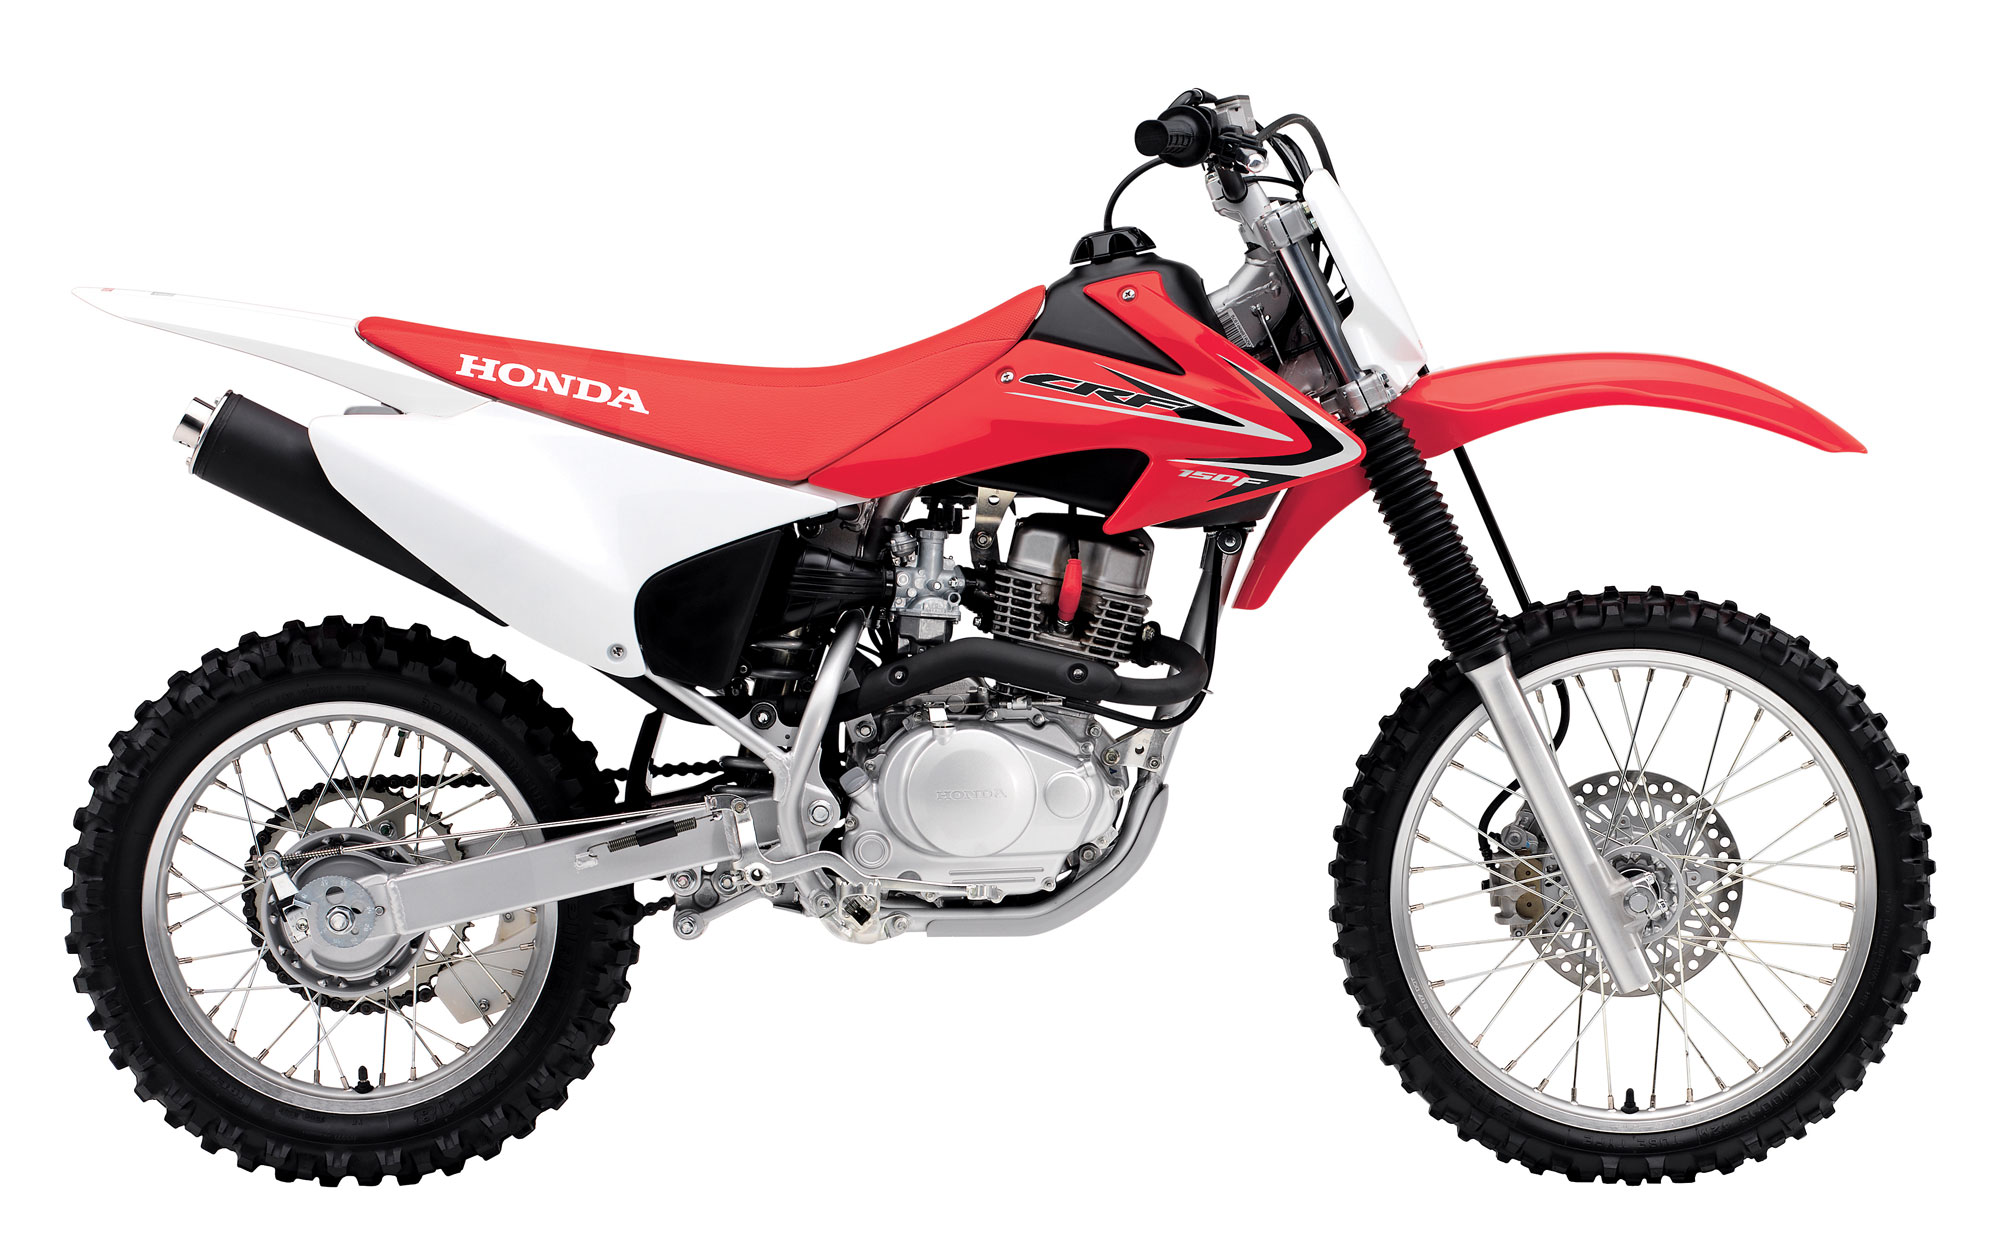 2013 honda crf150f review - top speed